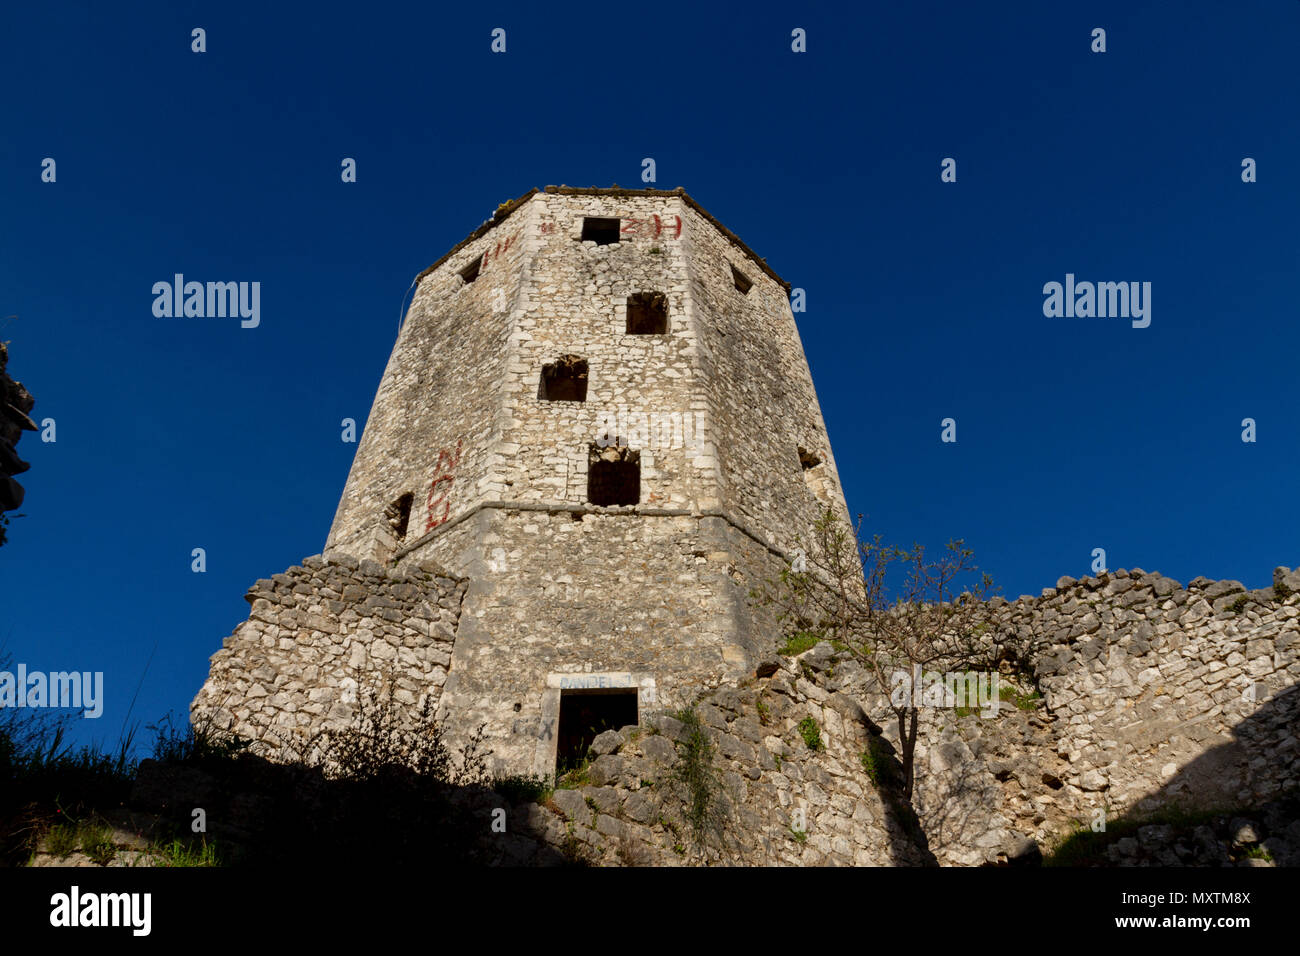 The Kula, overlooking the remains of Počitelj, a UNESCO-protected town, Federation of Bosnia and Herzegovina. Stock Photo